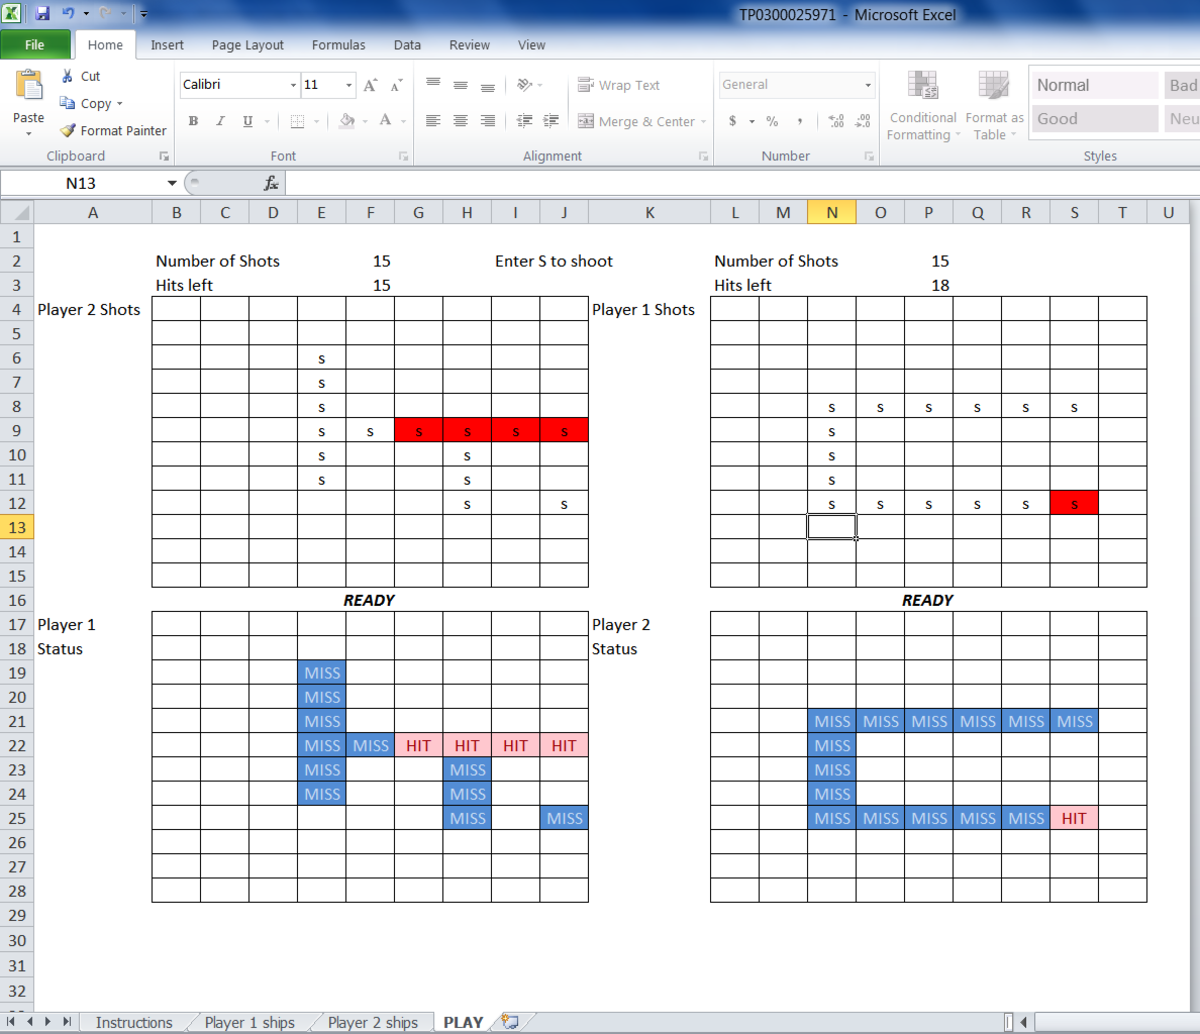 Microsoft Excel is a very powerful tool, but it is versatile enough to have some fun. Within the templates is a section of games - this is an interactive Battleships worksheet.